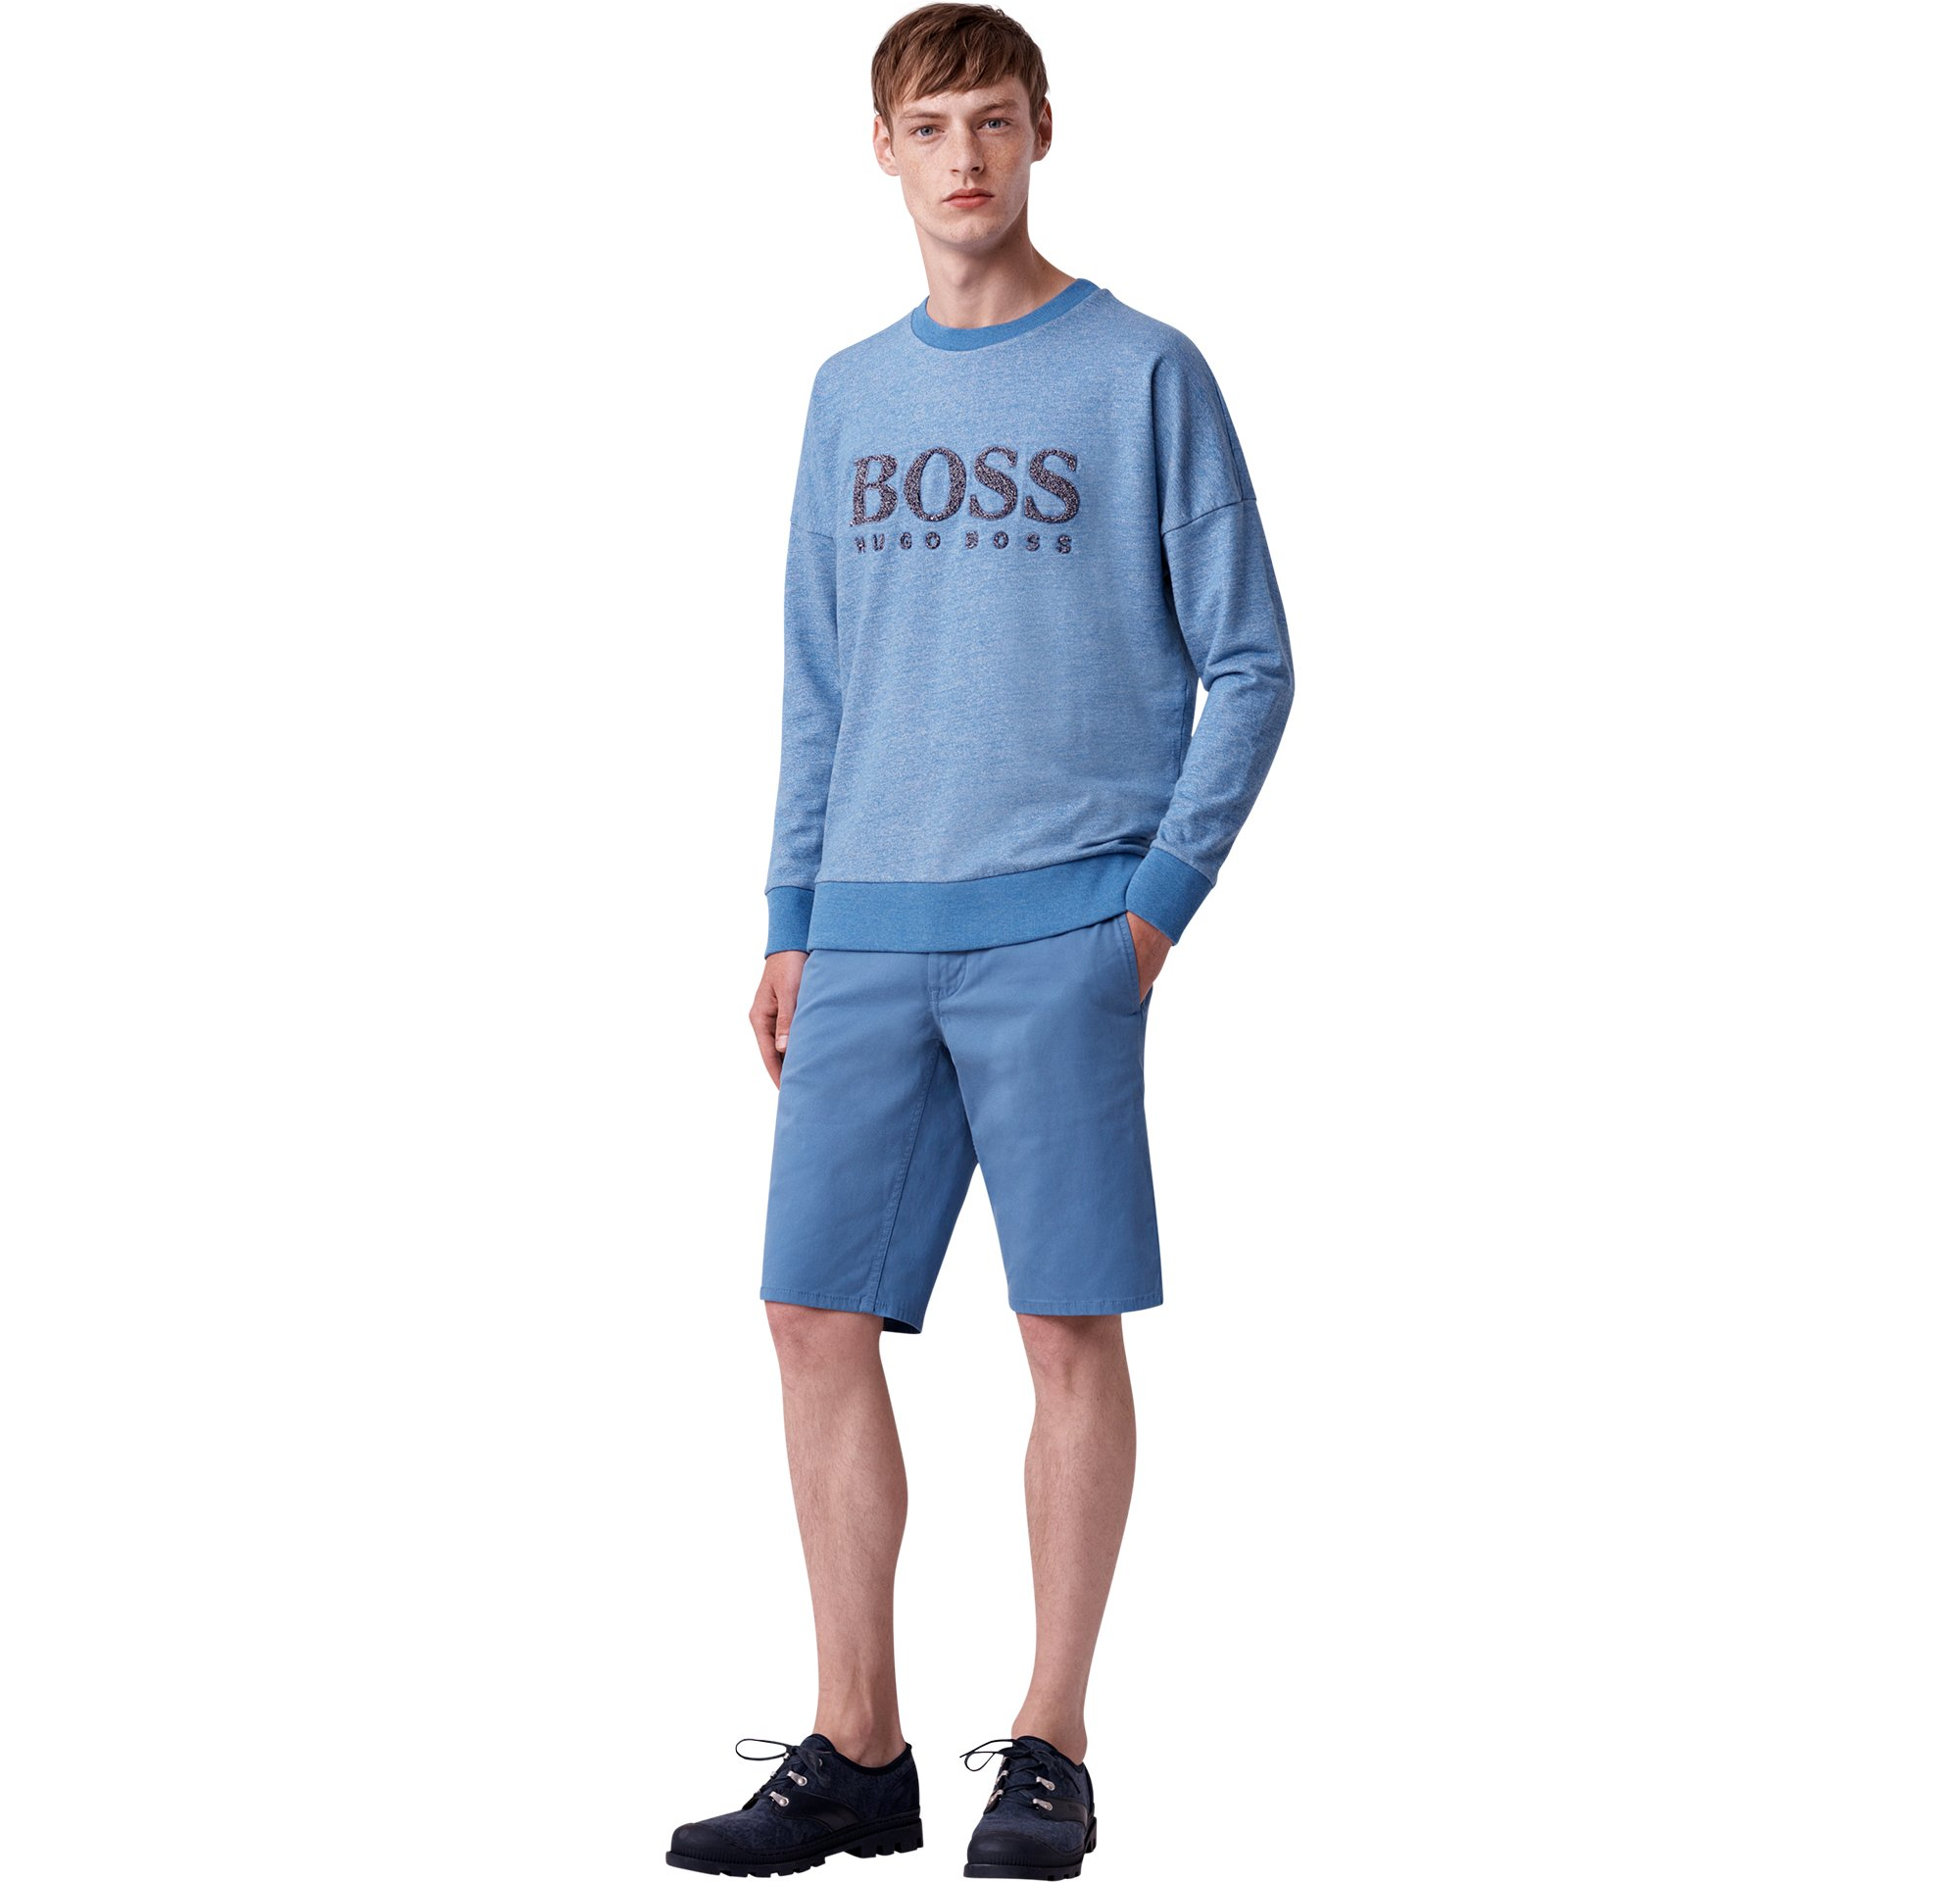 BOSS_ORANGE_Men_SR18_Look_2,